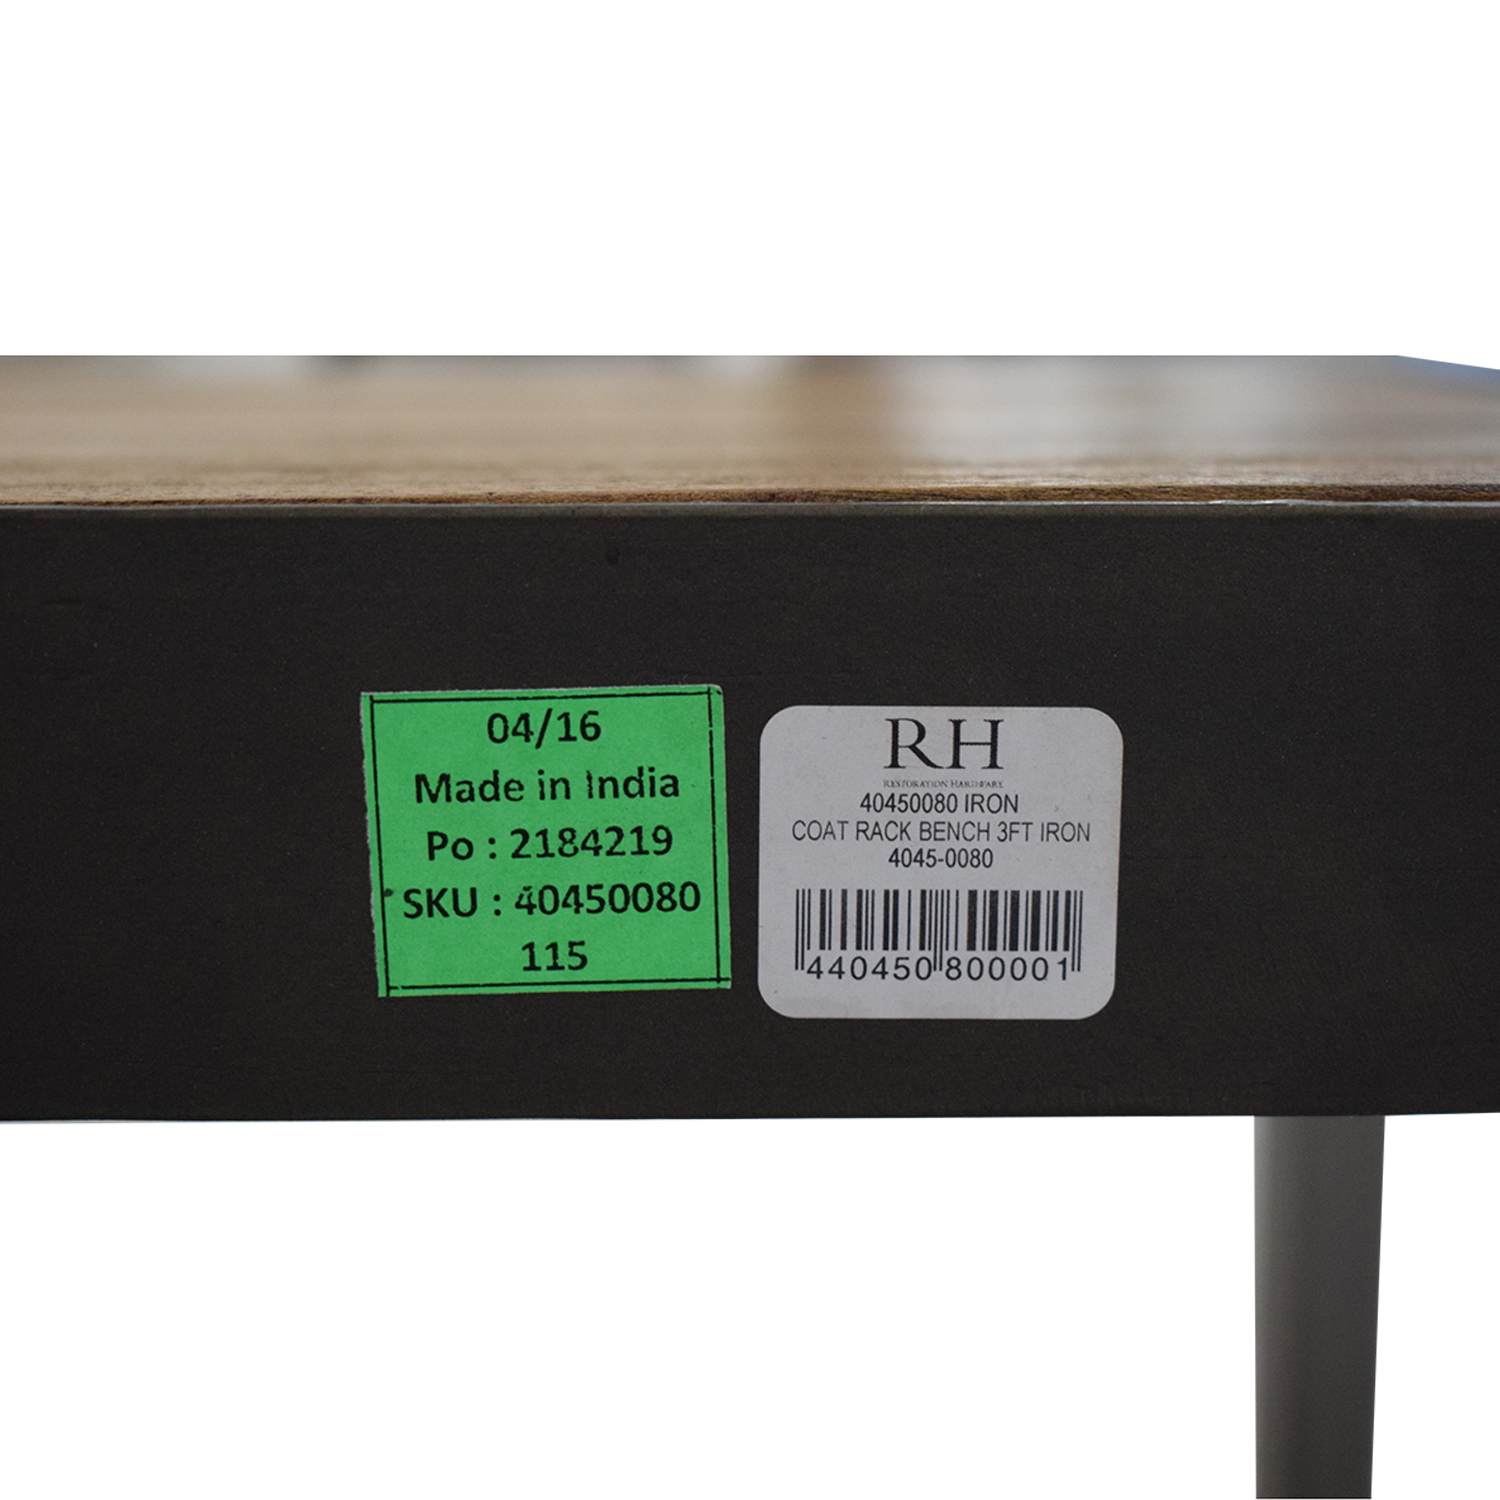 Restoration Hardware Restoration Hardware Coat Rack Bench for sale